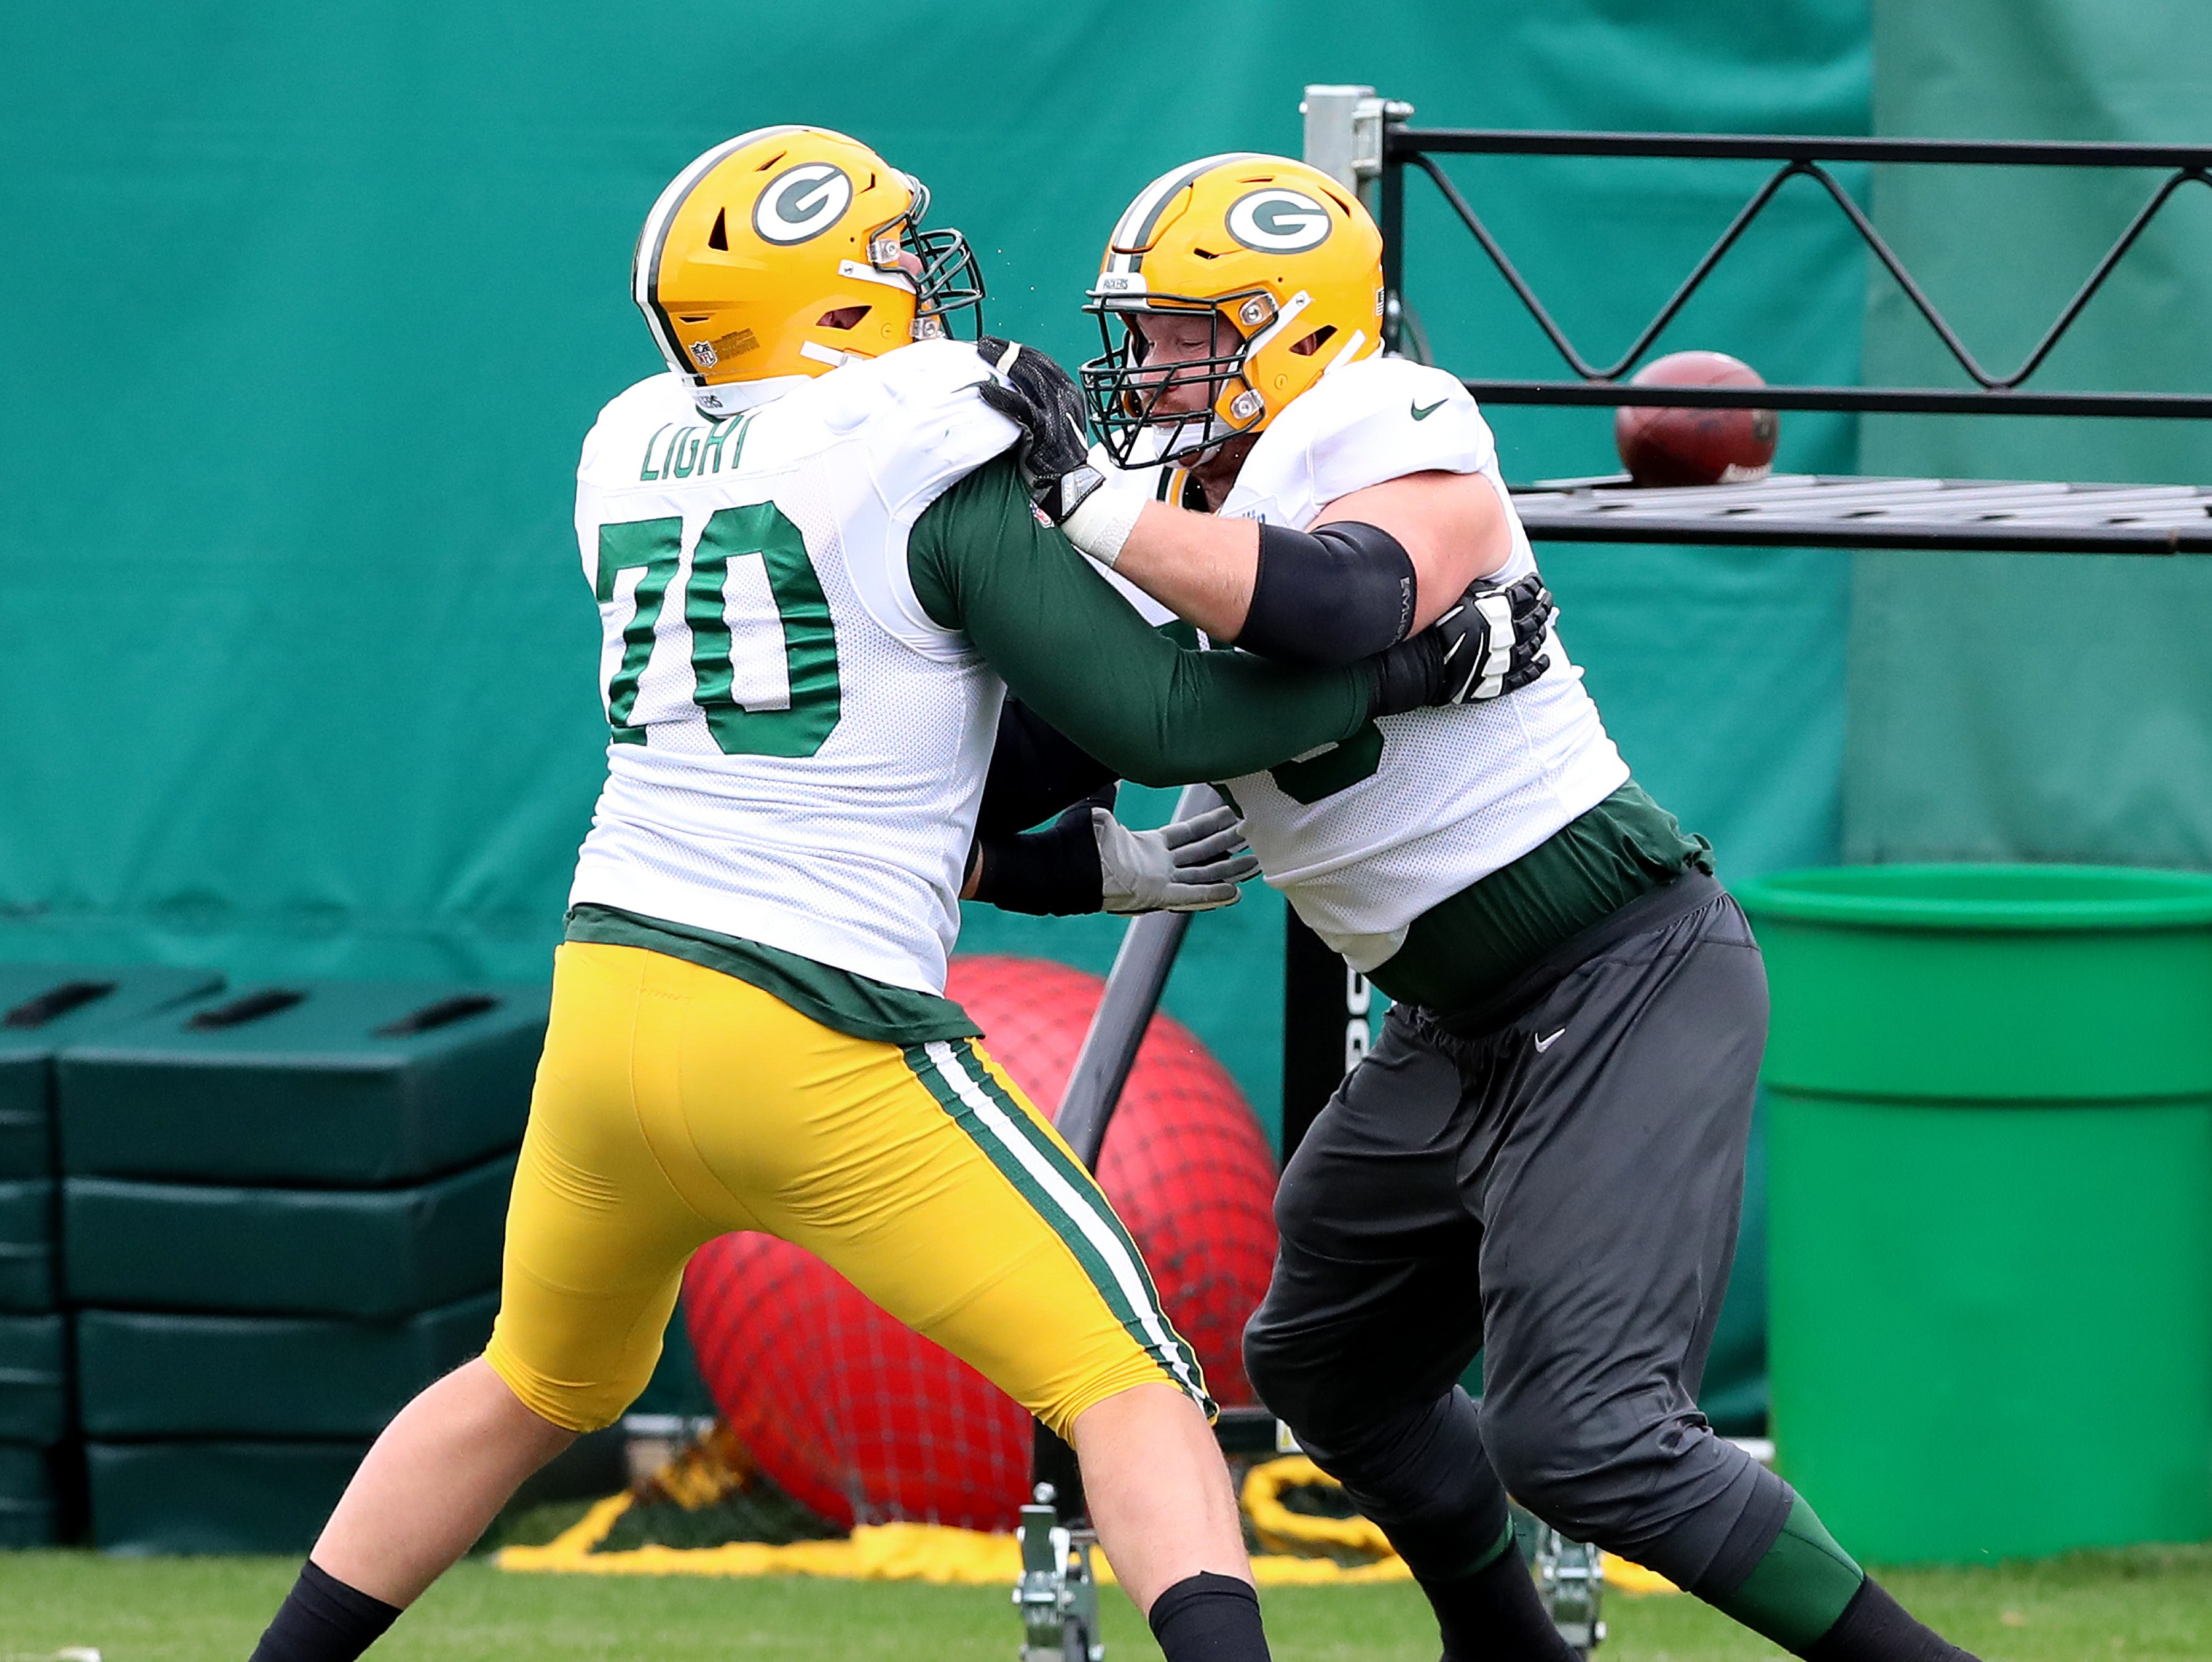 Green Bay Packers offensive tackle Bryan Bulaga (75) drills with offensive guard Alex Light (70) during practice on Clarke Hinkle Field Thursday, September 27, 2018 in Ashwaubenon, Wis